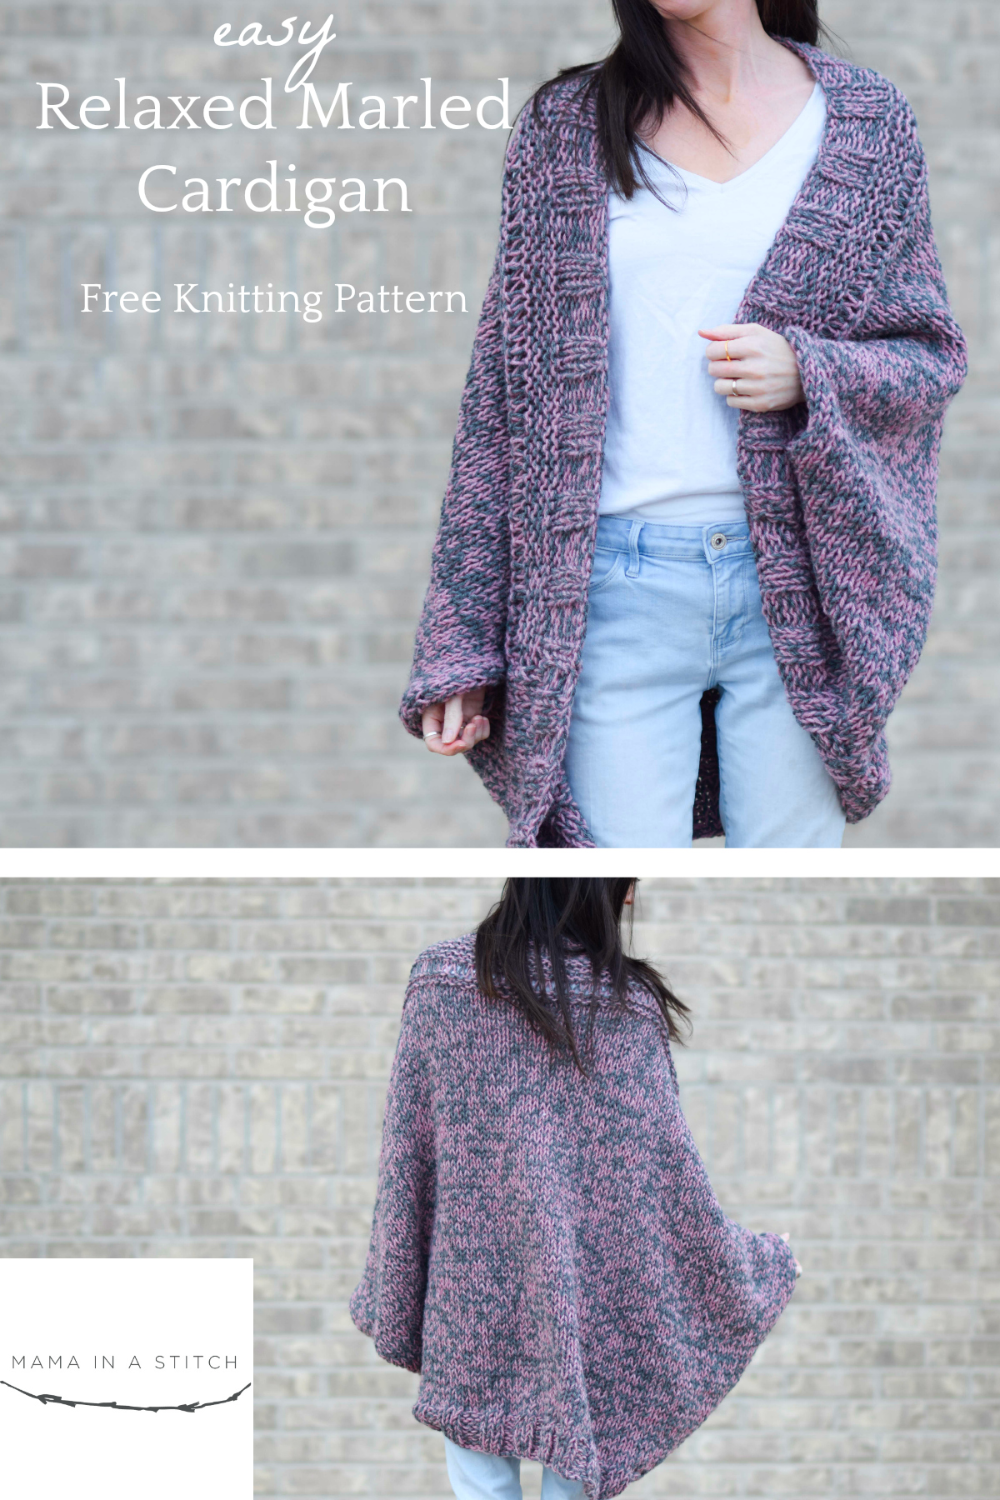 Easy Relaxed Marled Cardigan Knitting Pattern #blanketsweater